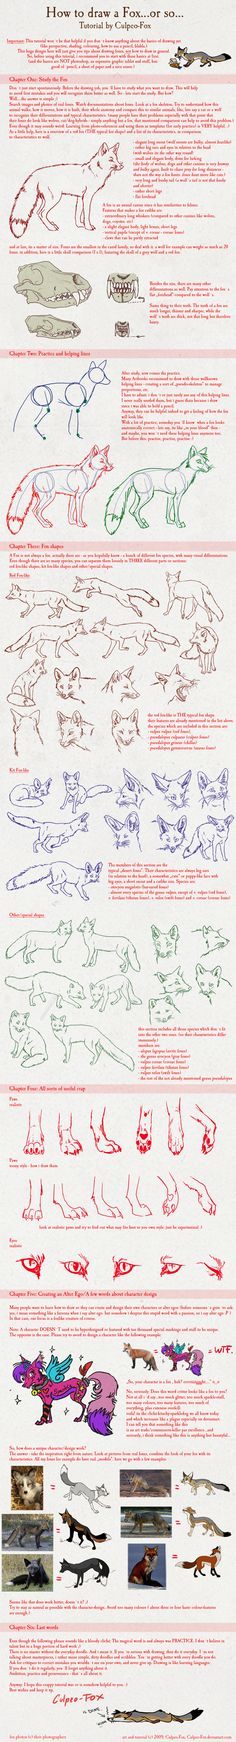 Fox Tutorial by Culpeo-Fox.deviantart.com---- Be careful reading this one, there are a few bad words at the bottom, but I mostly repinned for the fox poses.